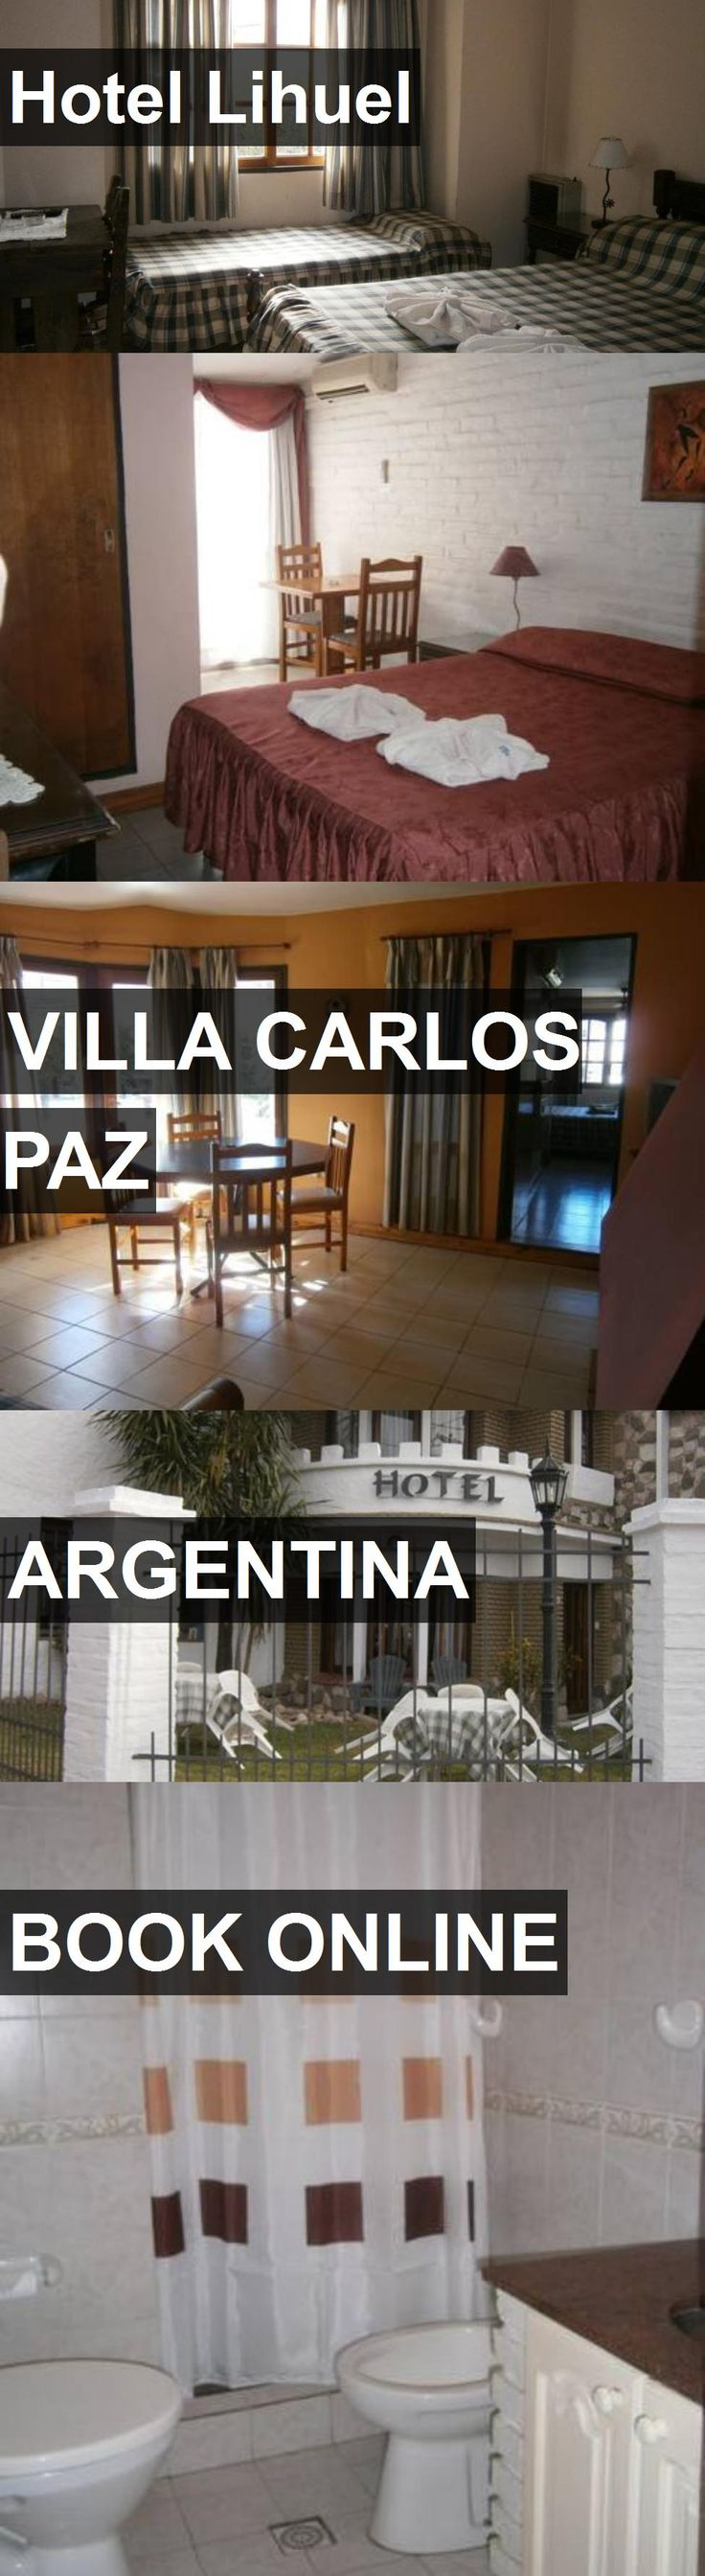 Hotel Lihuel in Villa Carlos Paz, Argentina. For more information, photos, reviews and best prices please follow the link. #Argentina #VillaCarlosPaz #travel #vacation #hotel